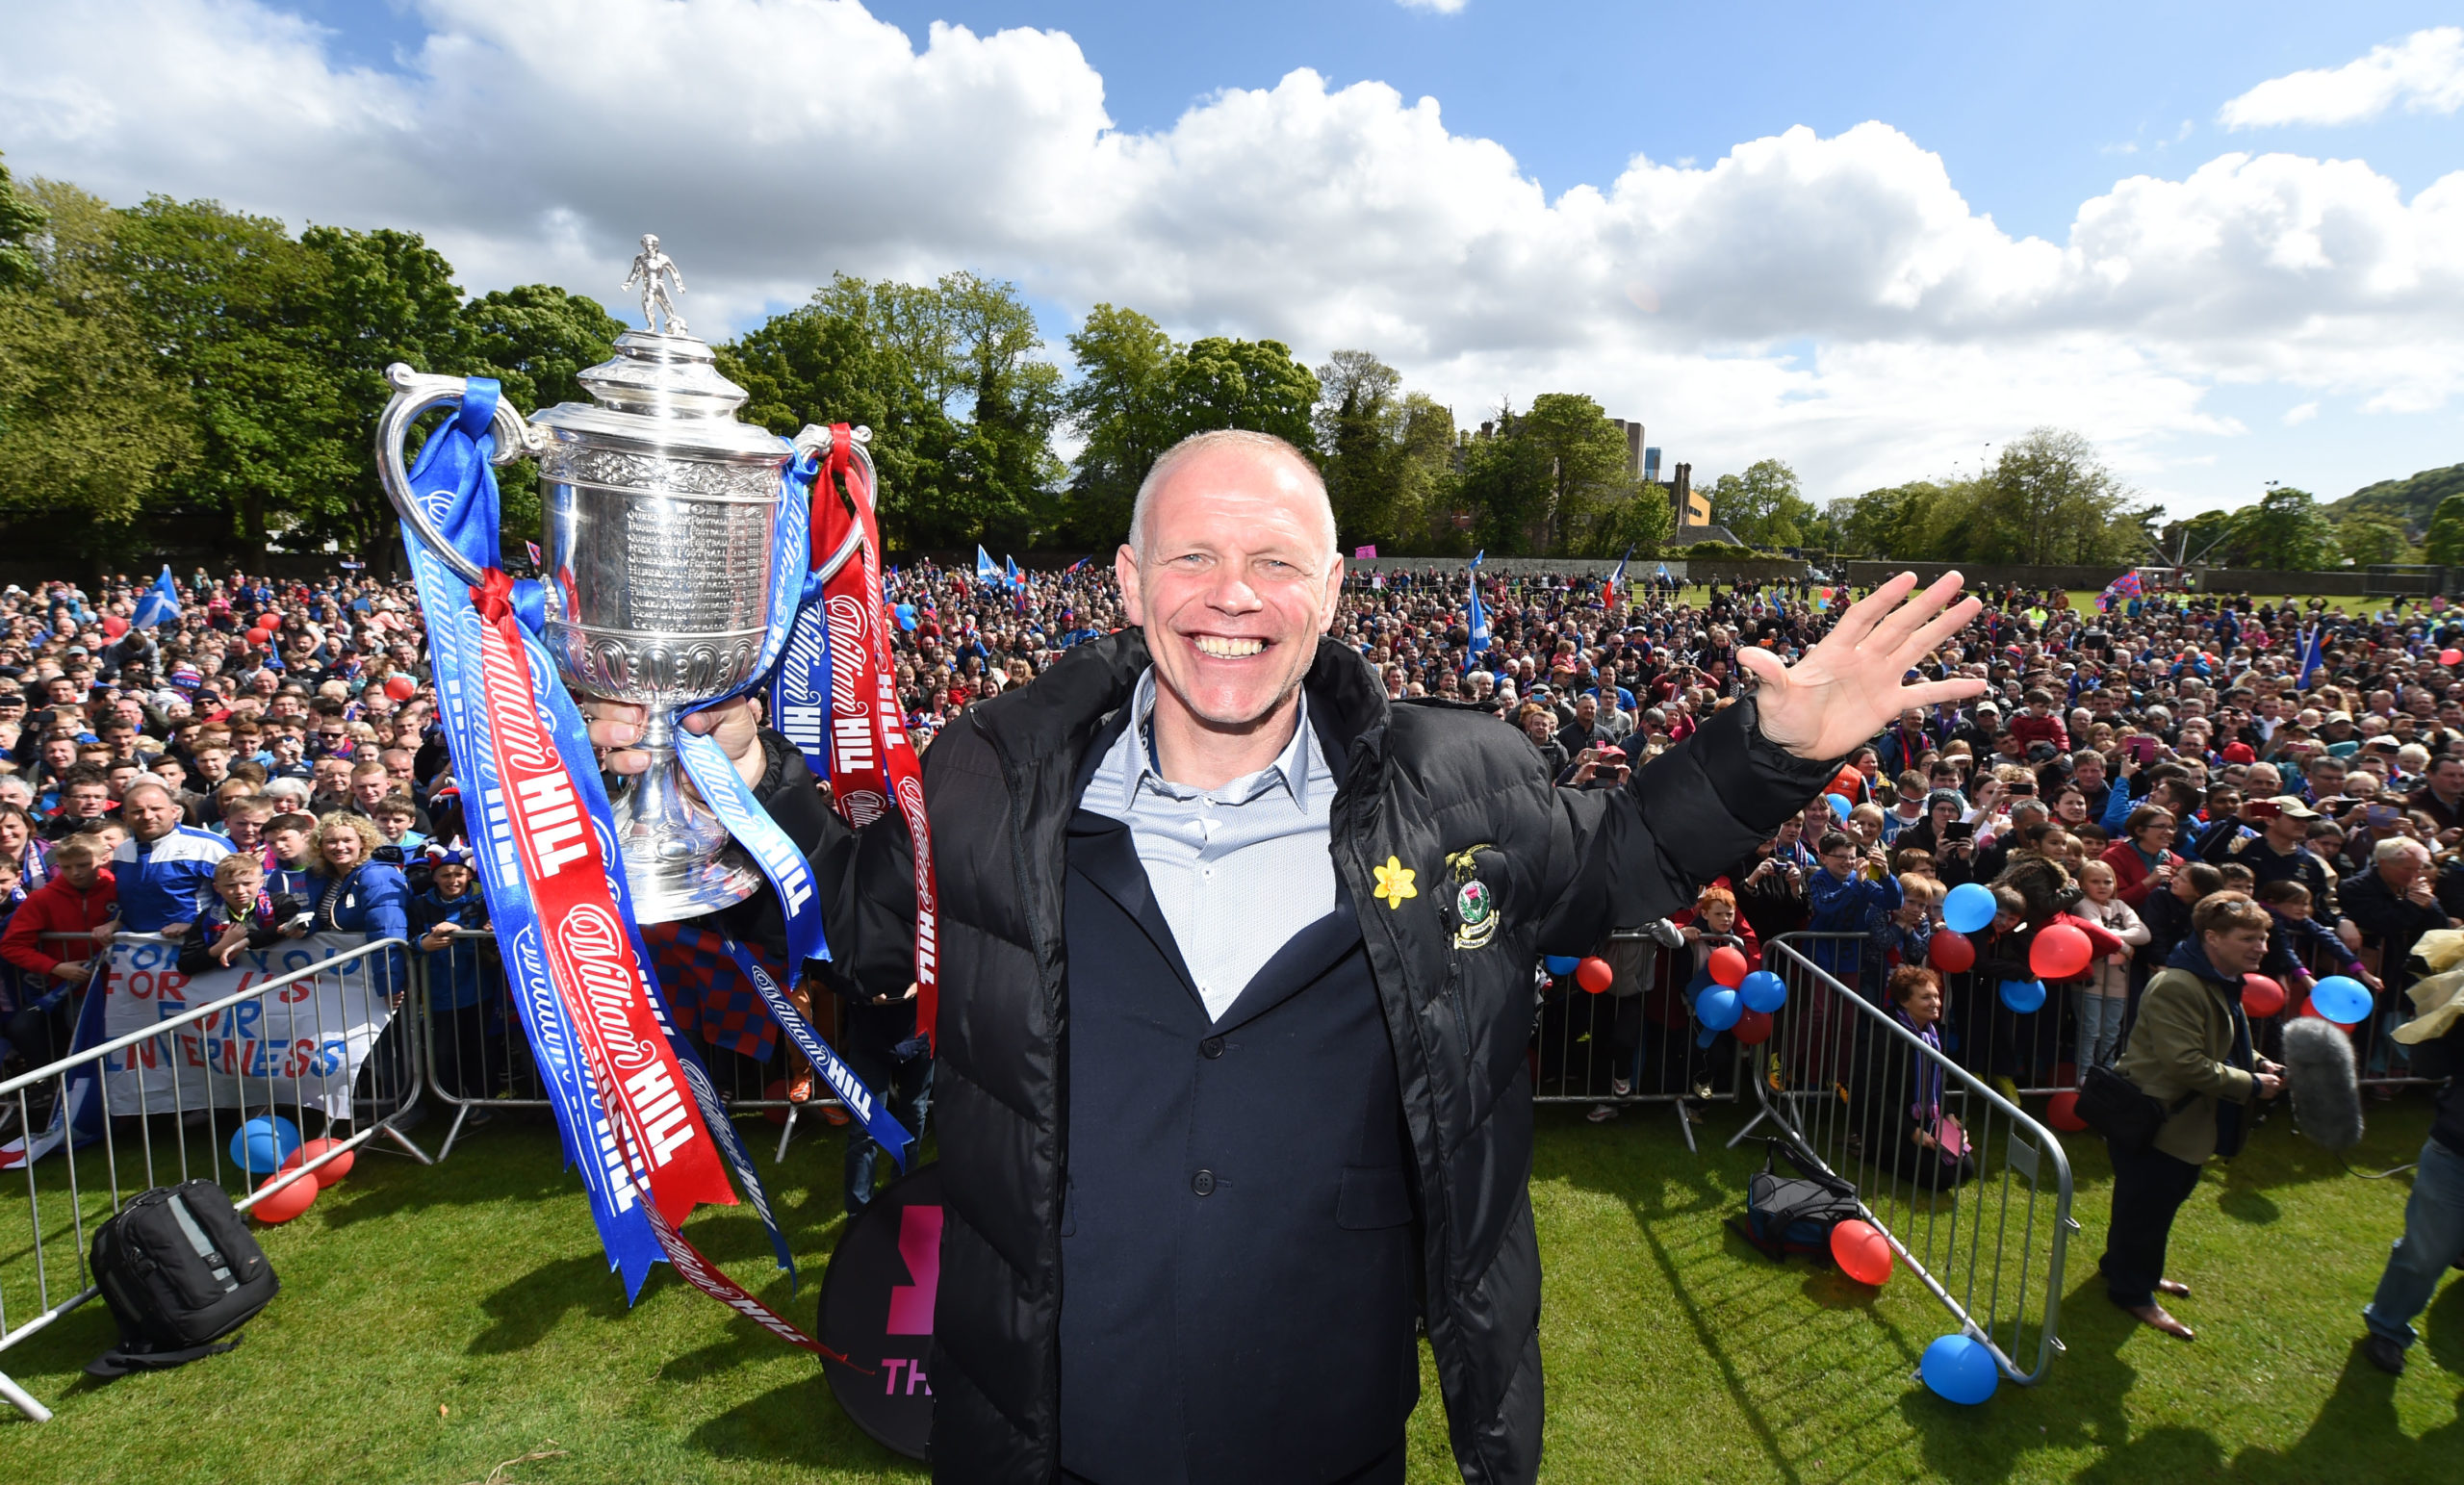 John Hughes led Caley Thistle to Scottish Cup glory in 2015.